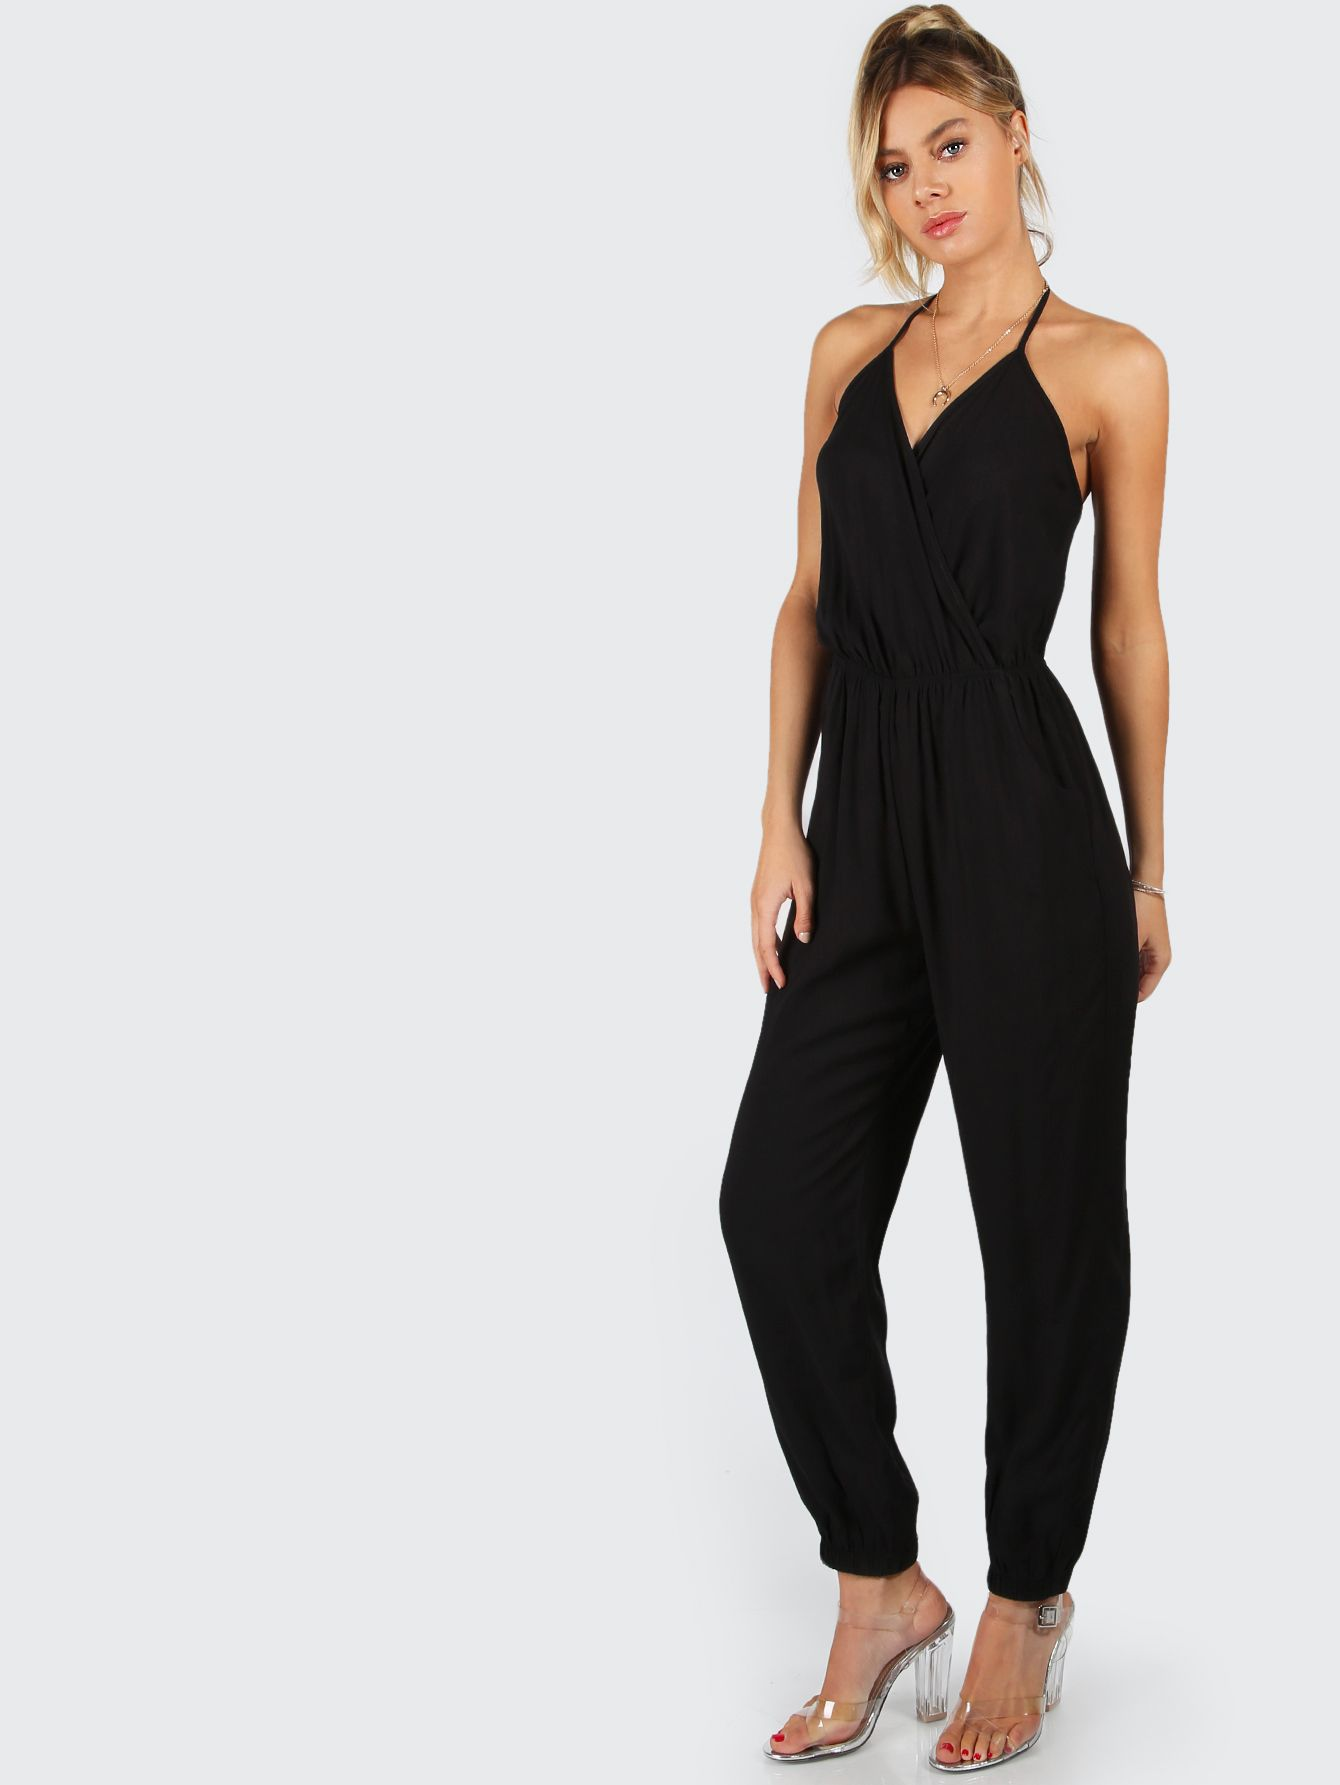 cea8d8d17c159d Shop Surplice Self Tie Halter Jumpsuit online. SheIn offers Surplice Self  Tie Halter Jumpsuit   more to fit your fashionable needs.